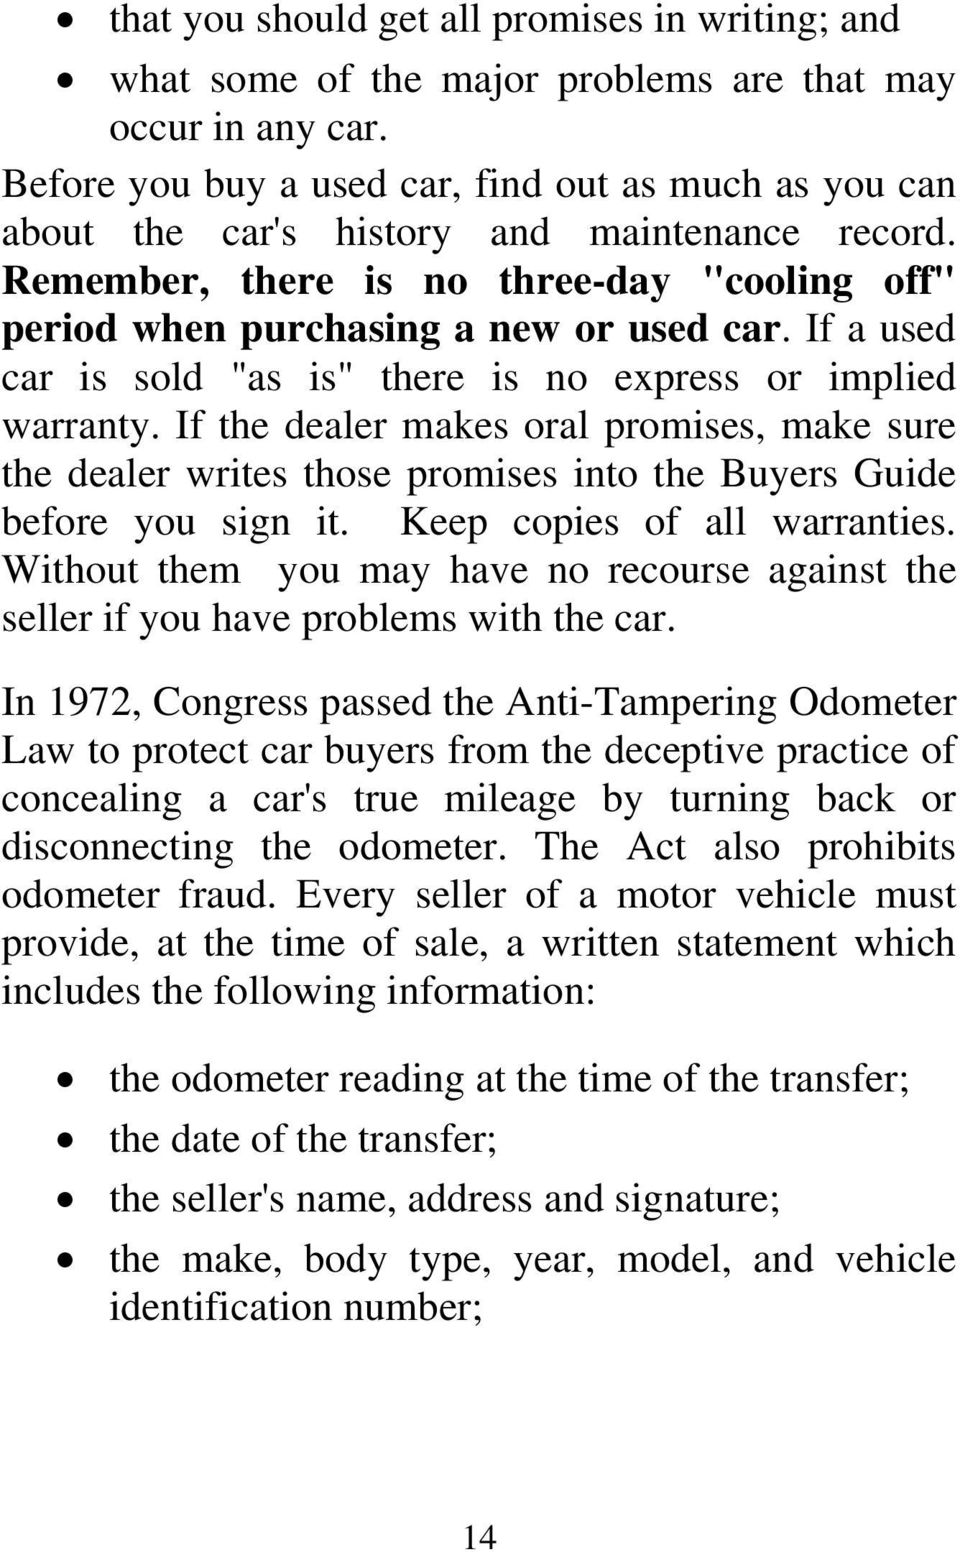 "If a used car is sold ""as is"" there is no express or implied warranty. If the dealer makes oral promises, make sure the dealer writes those promises into the Buyers Guide before you sign it."